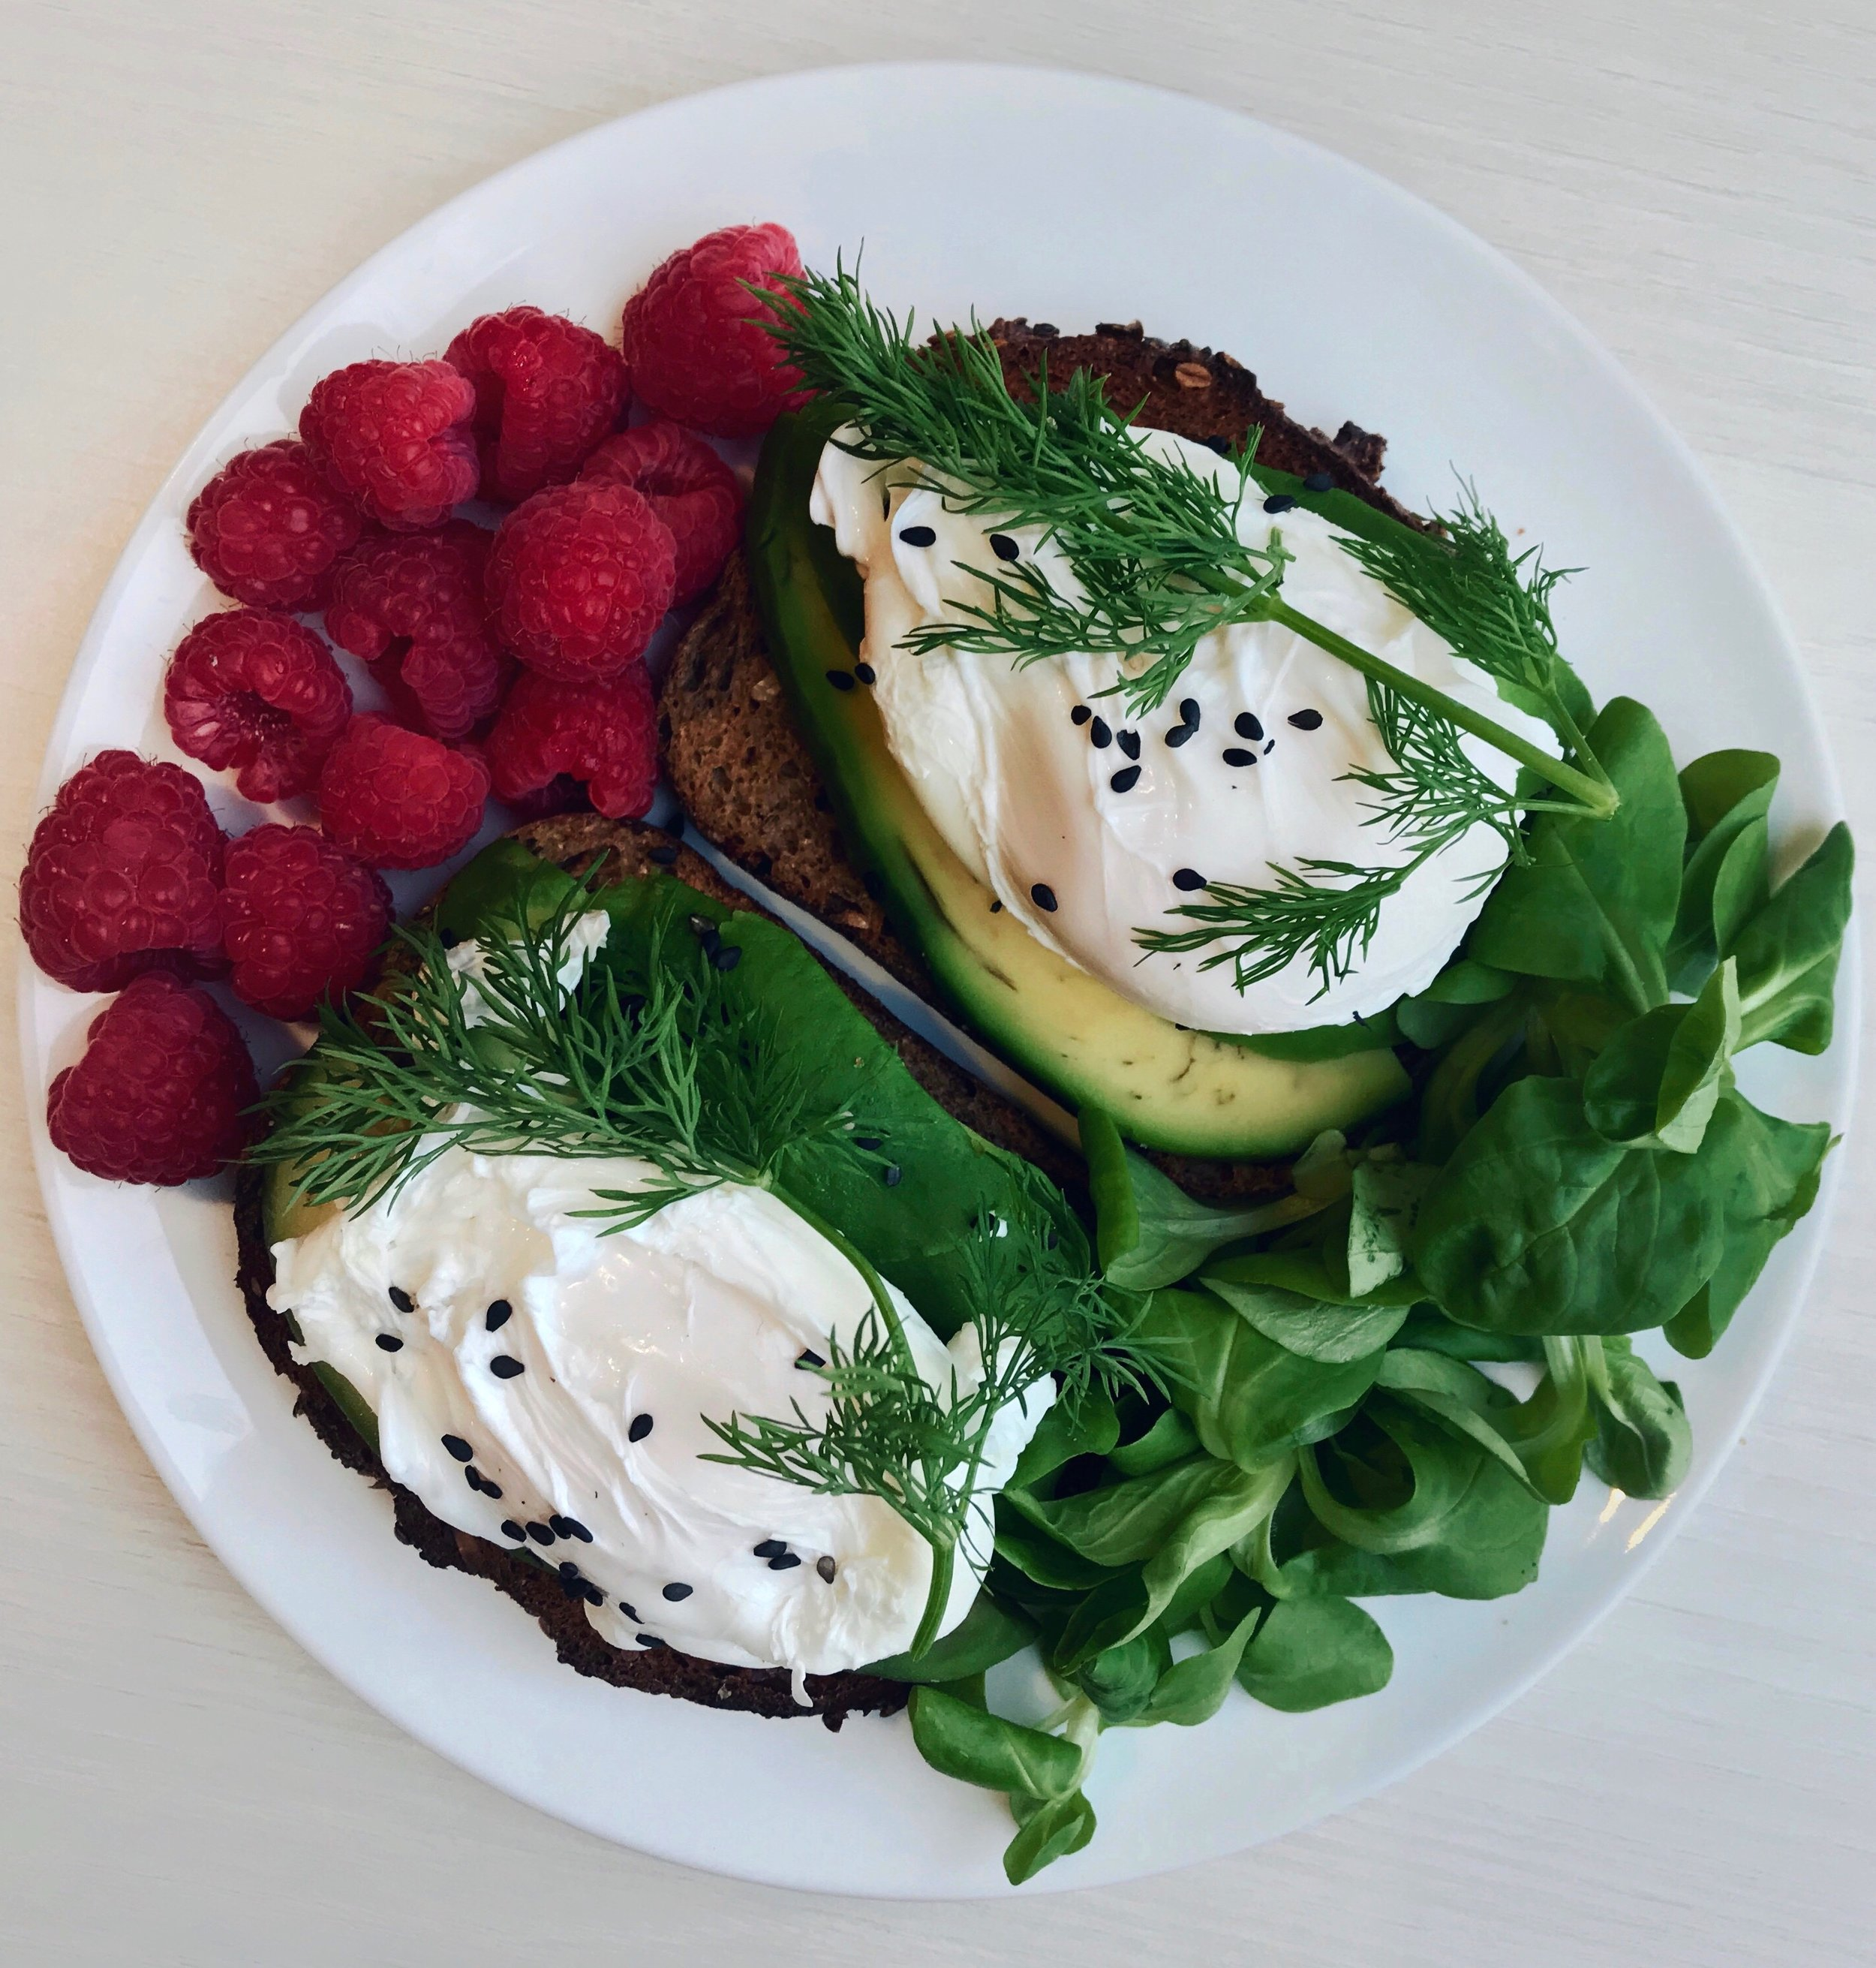 Avocado Toasts, Poached Eggs, Salad & Raspberries - Toasted nordic bread topped with avocado slices + poached eggs +@naturalia_magasins_biosesame seeds + dill +@driscollsberryfresh raspberries +@florette_francesalad leaves